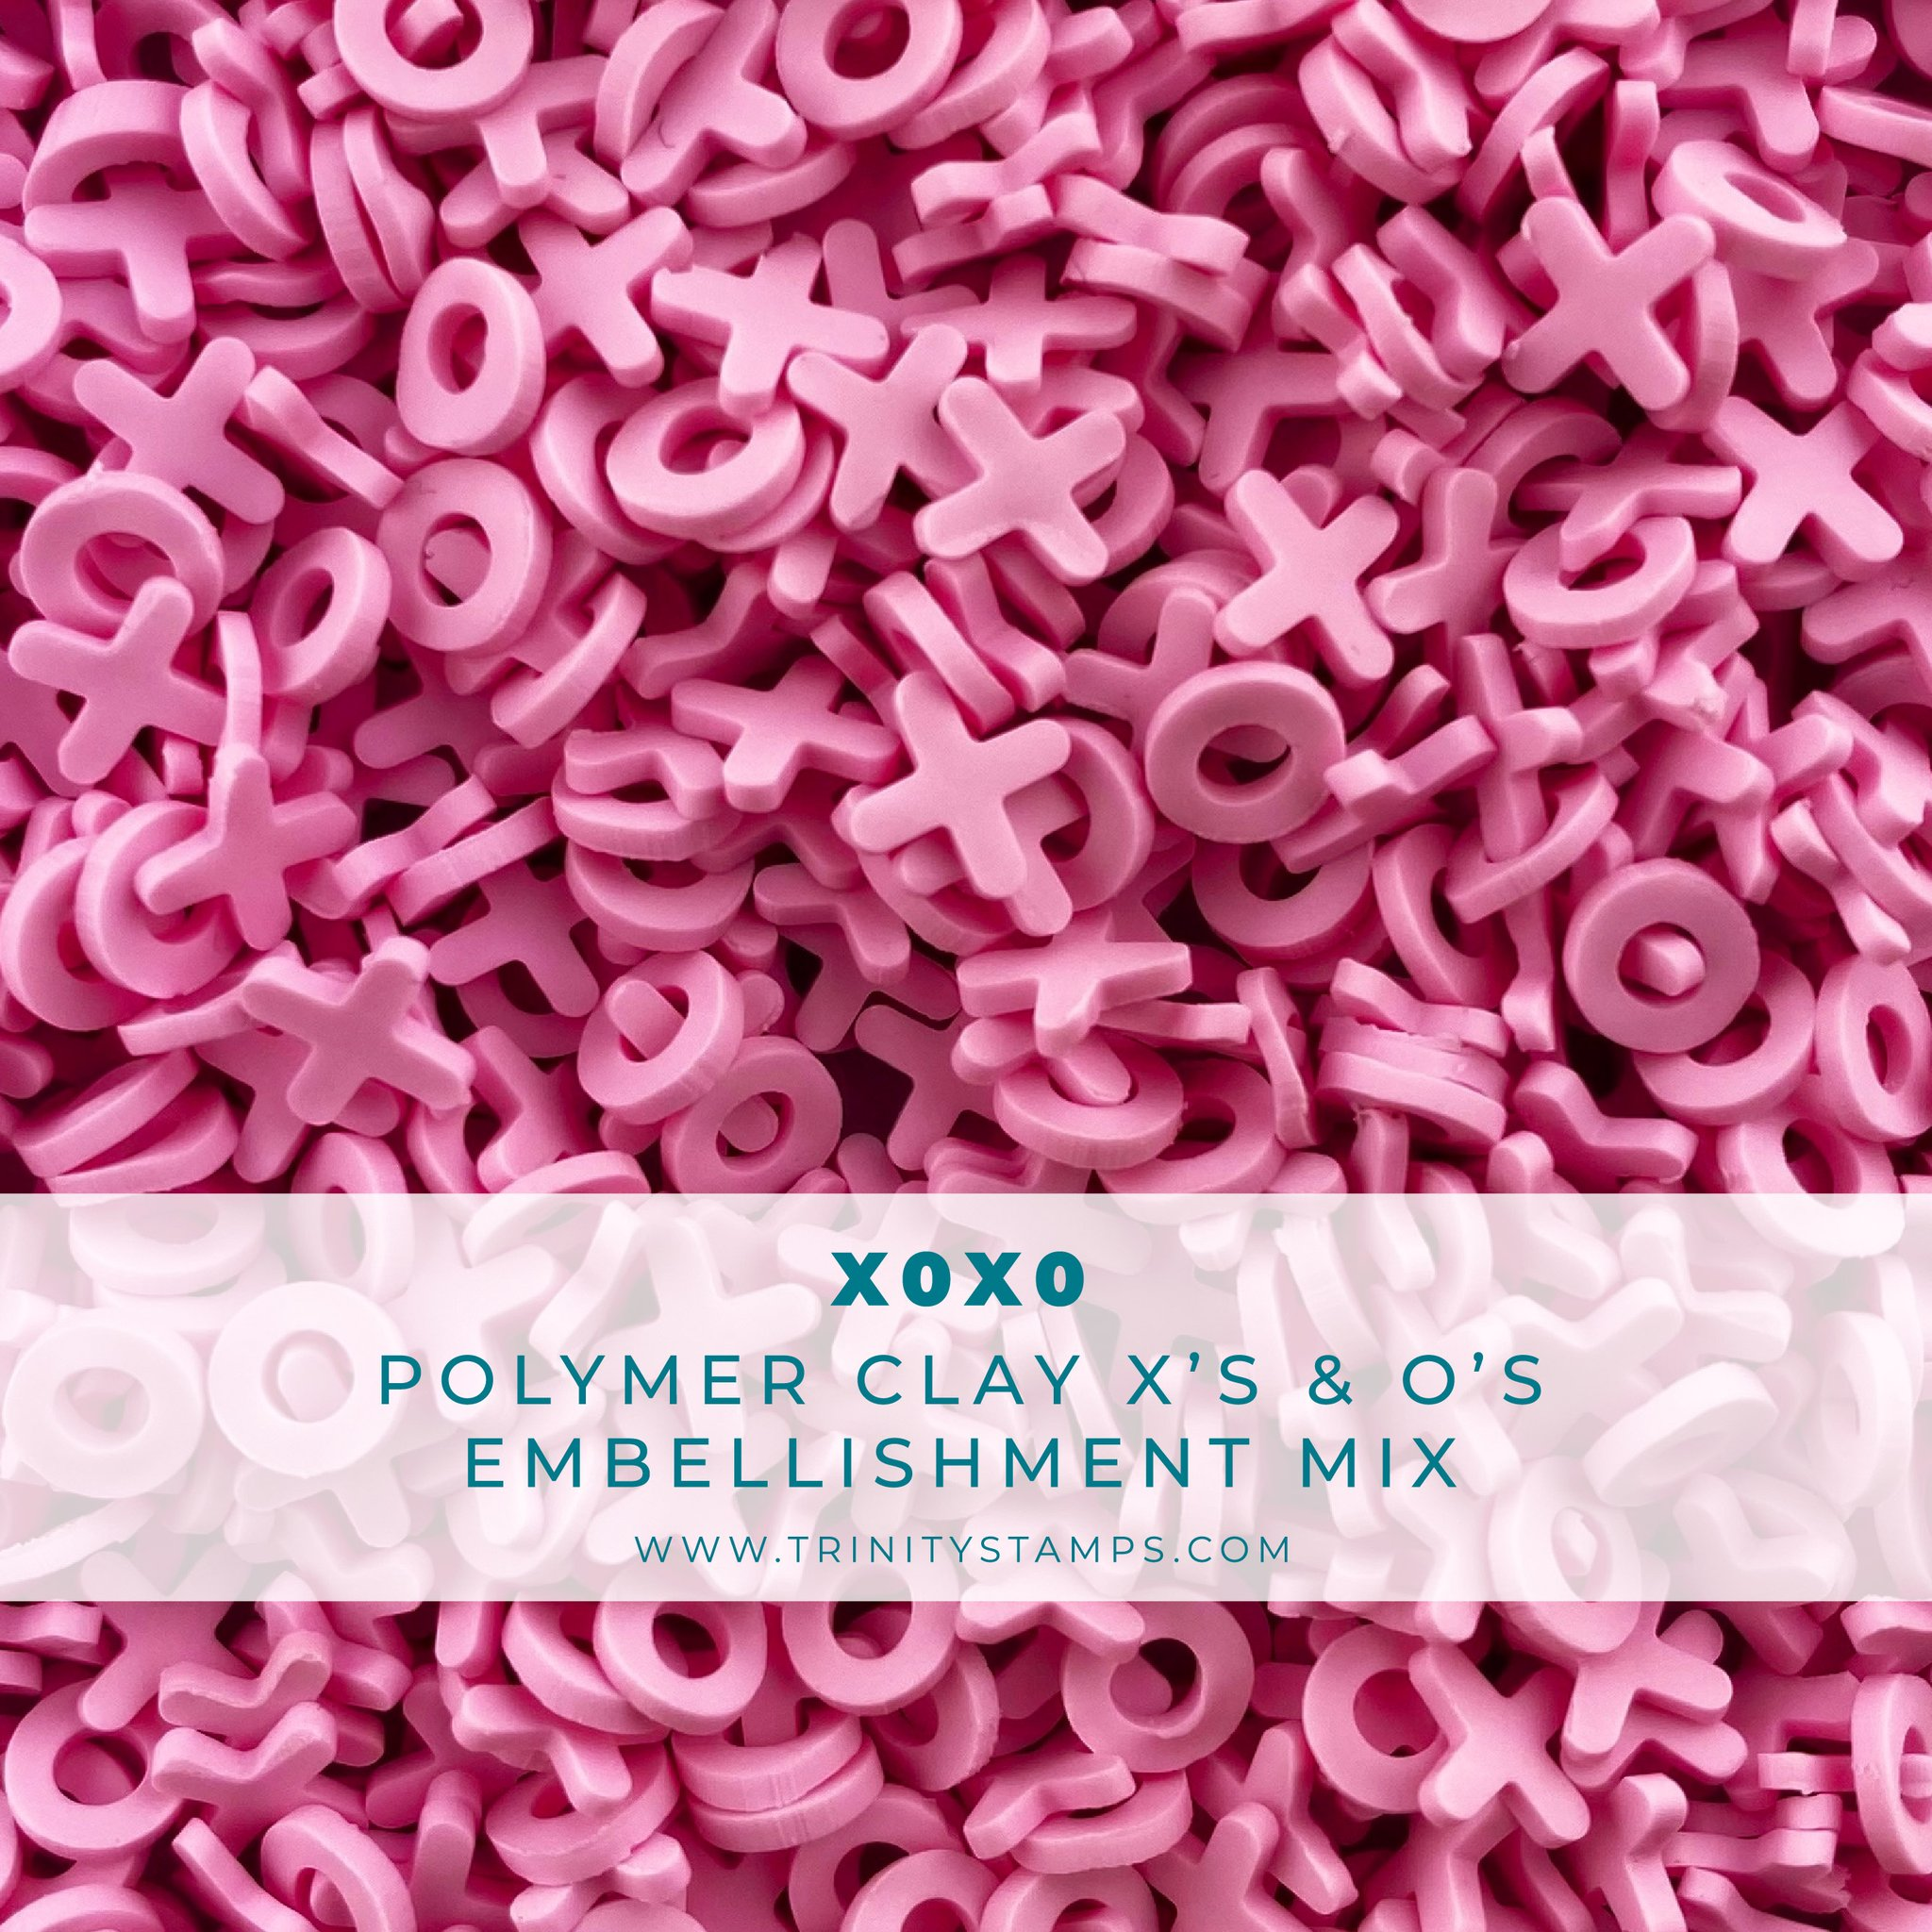 *NEW* - Trinity Stamps - XOXO Clay Embellishment Mix